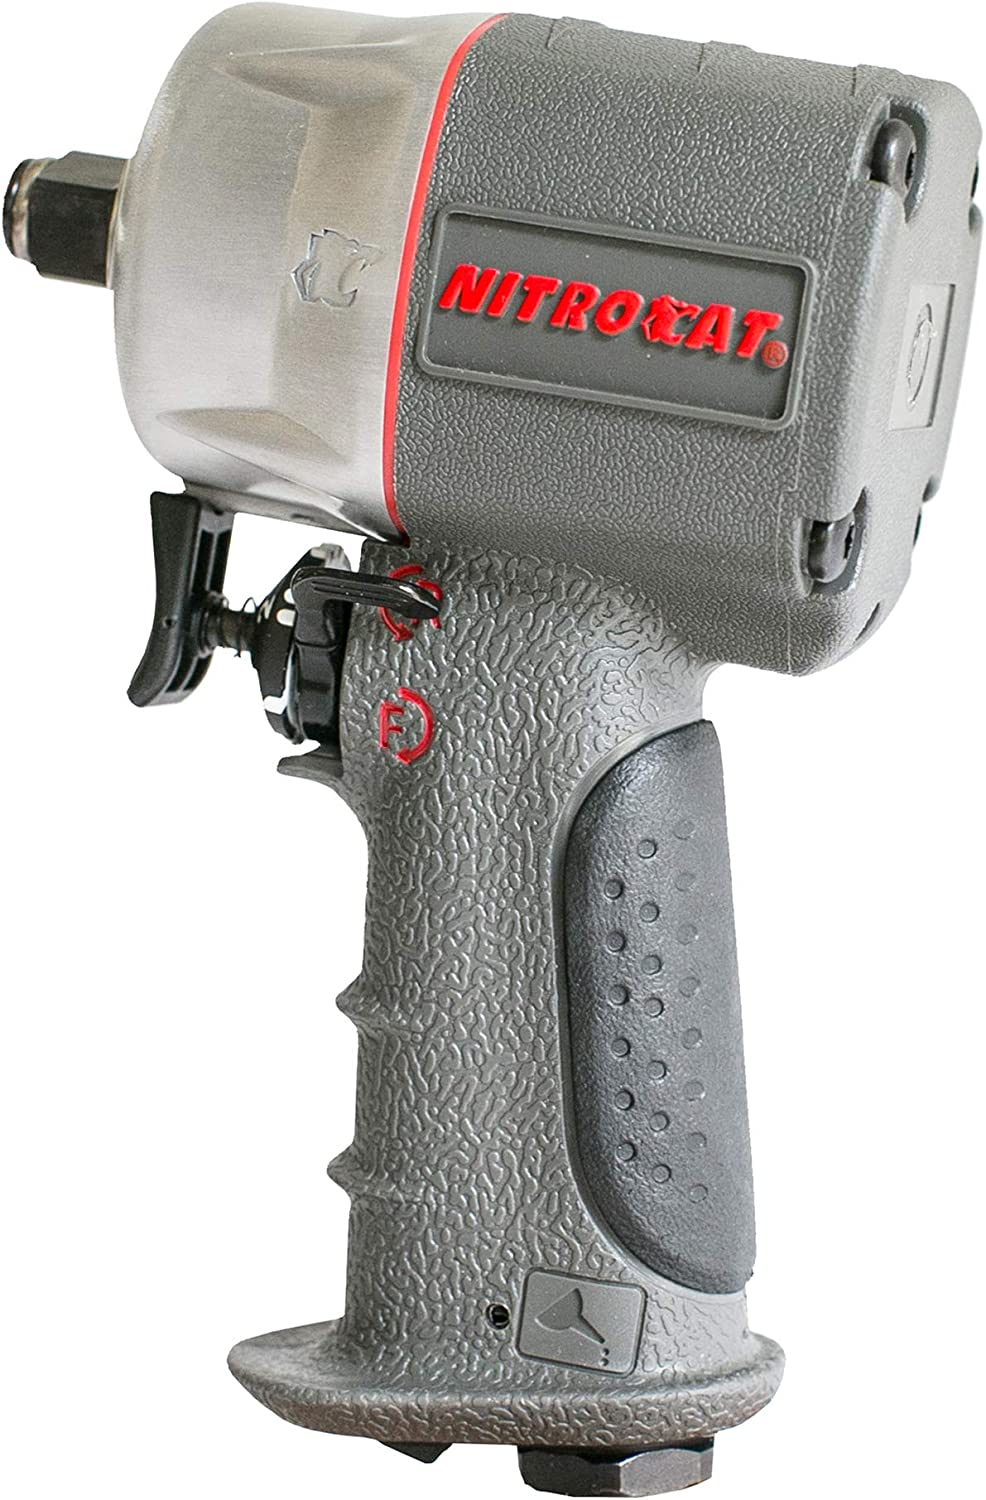 """AIRCAT 1076-XL 3/8"""" Compact Composite Impact Wrench"""